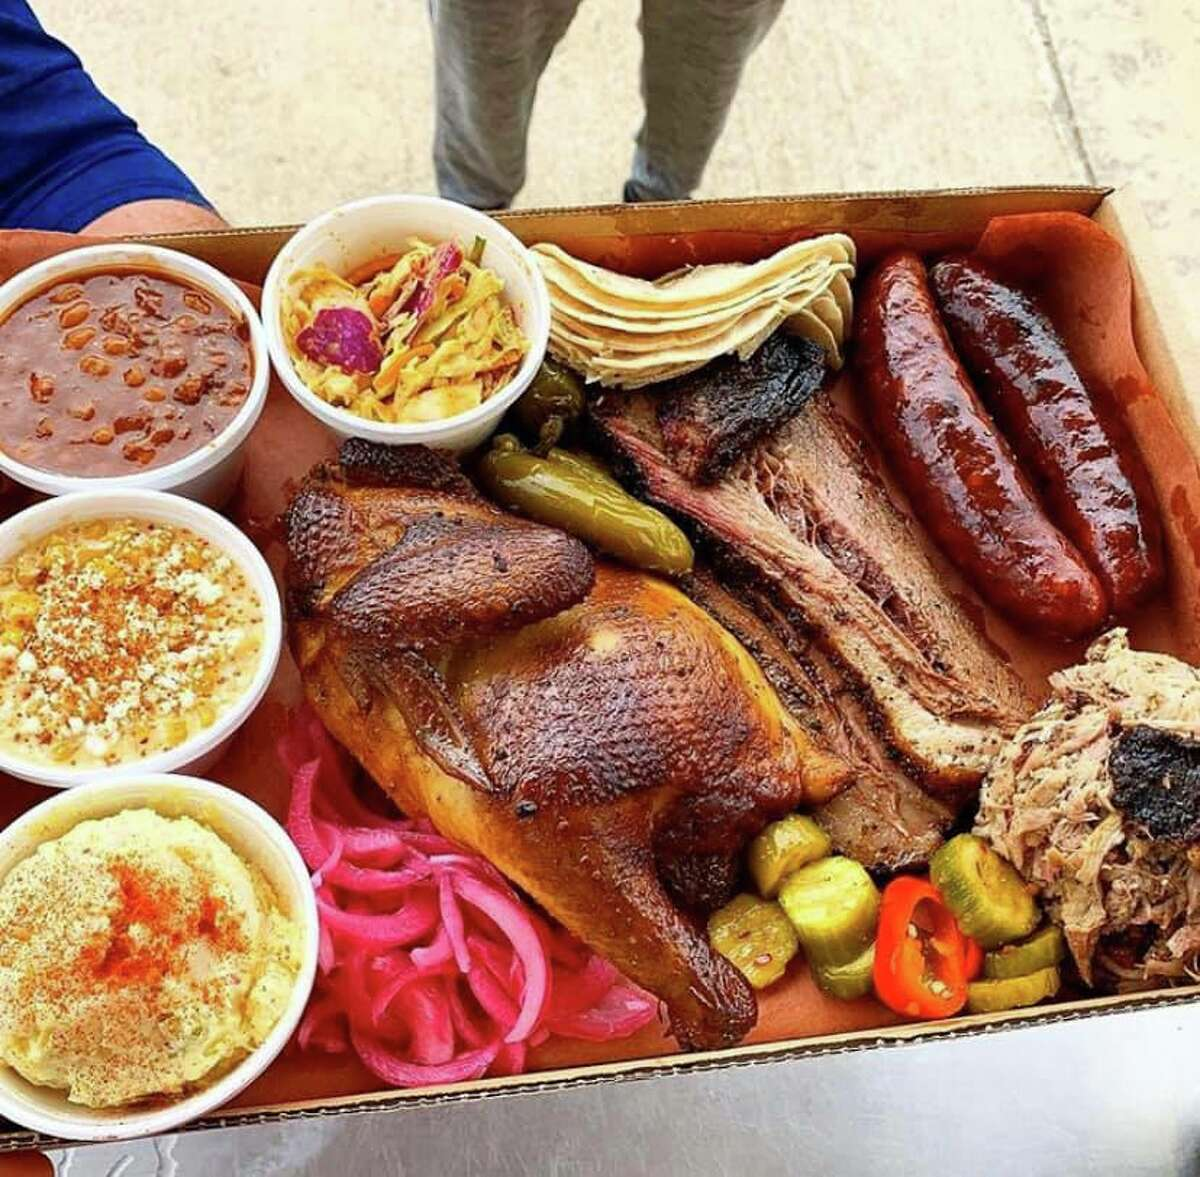 KatyBeloved BBQ food truck Daddy Duncan's BBQ has been working since 2018 to open its first brick-and-mortar location in Katy. The Chronicle confirmed the food truck and catering business will open its location in the spring of 2020 at Katy Hockley Cut-Off and Clay Road.